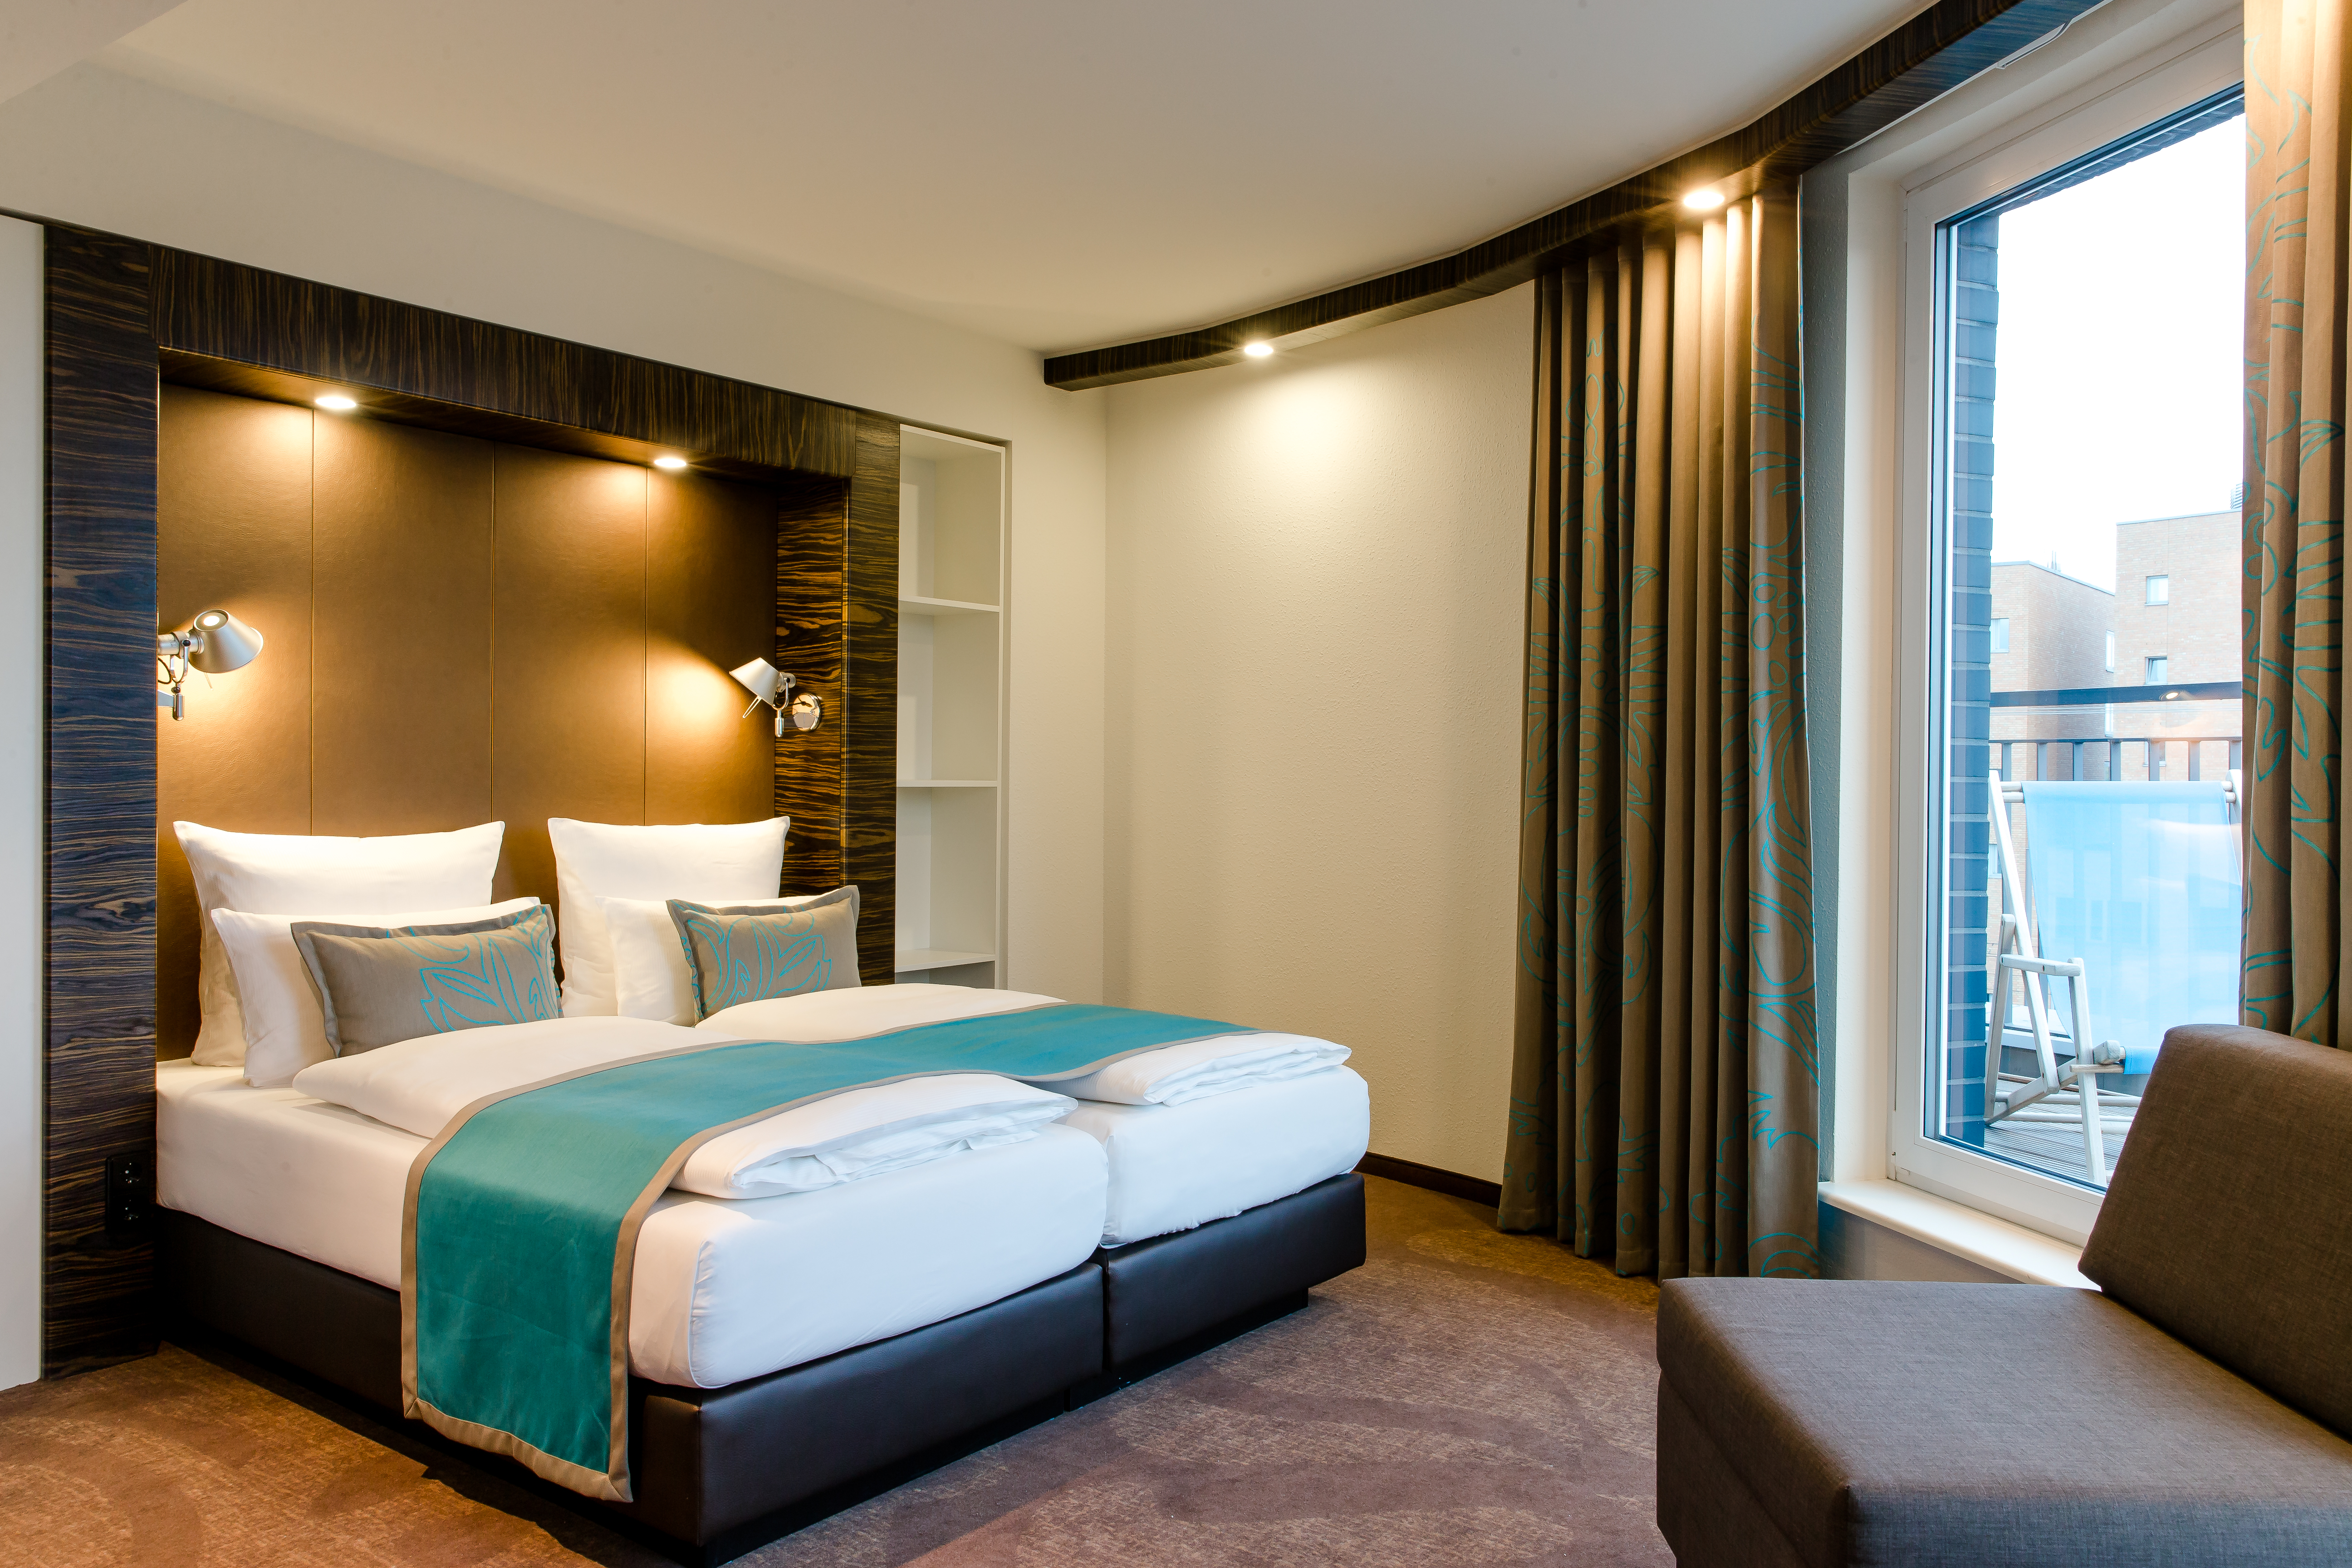 Hotel Berlin-Bellevue Motel One | Design Hotels Berlin Bellevue